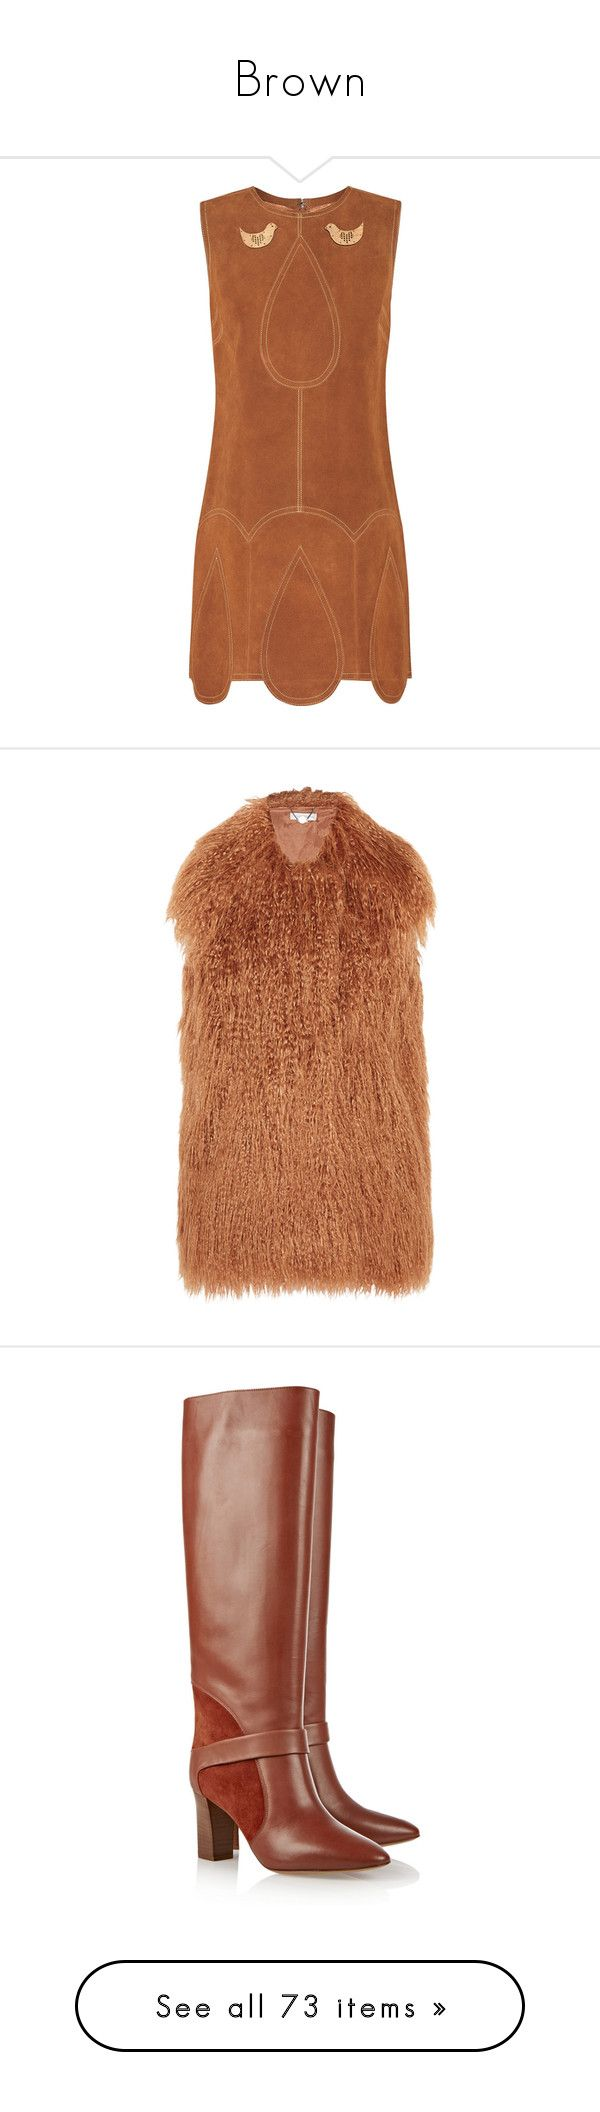 """""""Brown"""" by alyssa23 ❤ liked on Polyvore featuring dresses, anna sui, vestidos, brown, short dresses, anna sui dress, brown dress, brown suede dress, outerwear and vests"""